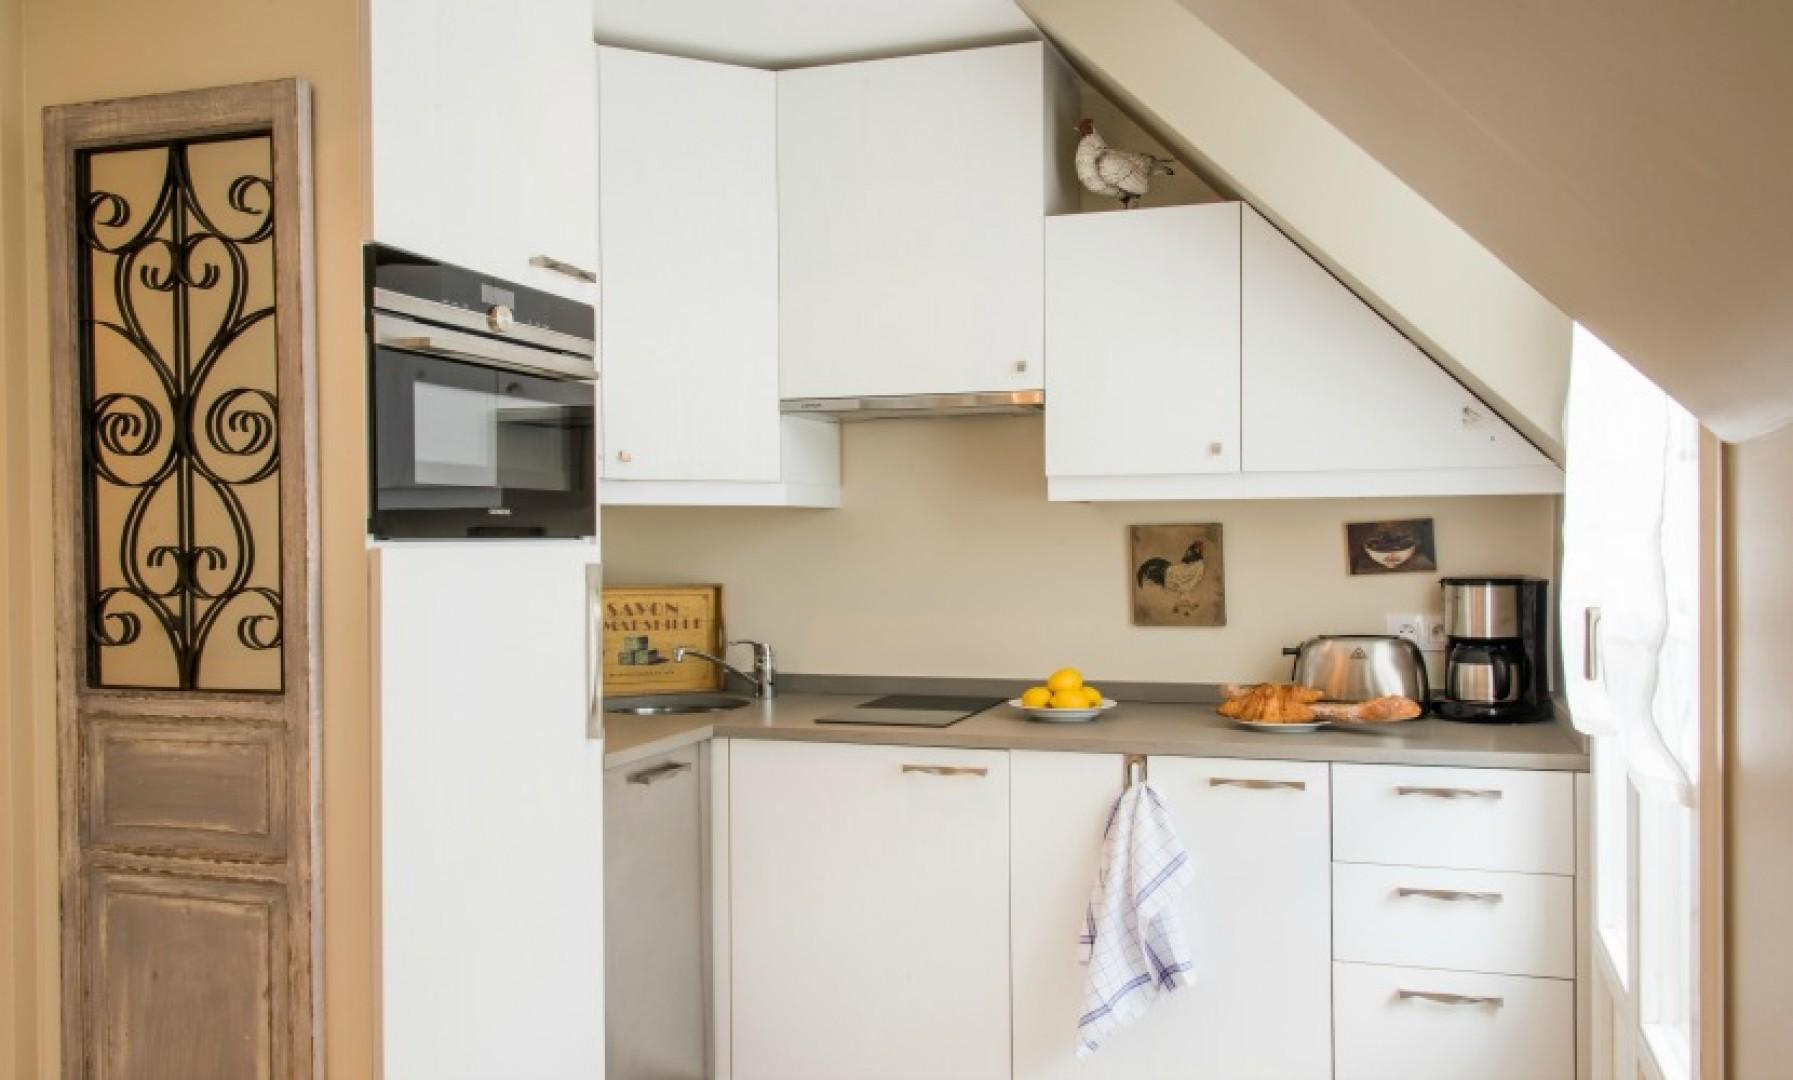 The kitchen is polished and easily accessible.